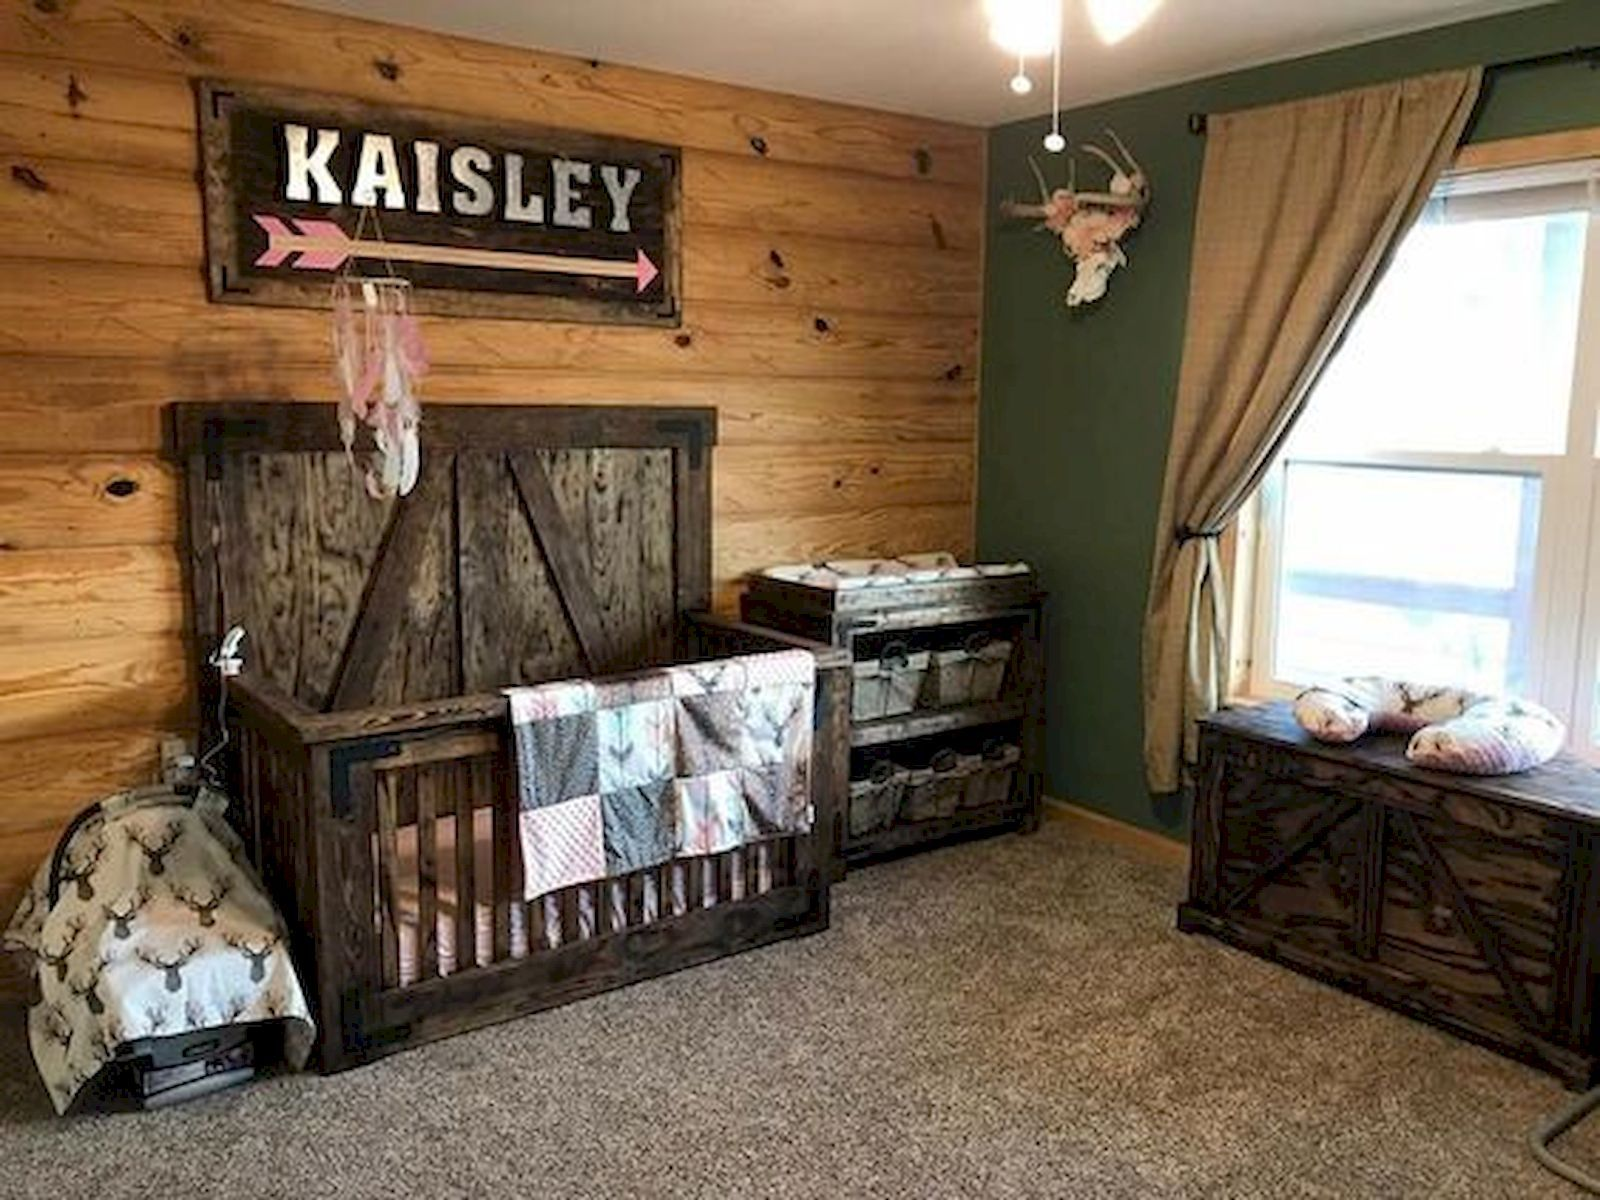 30 Adorable Rustic Nursery Room Ideas With Images Rustic Nursery Room Ideas Nursery Baby Room Baby Girl Room